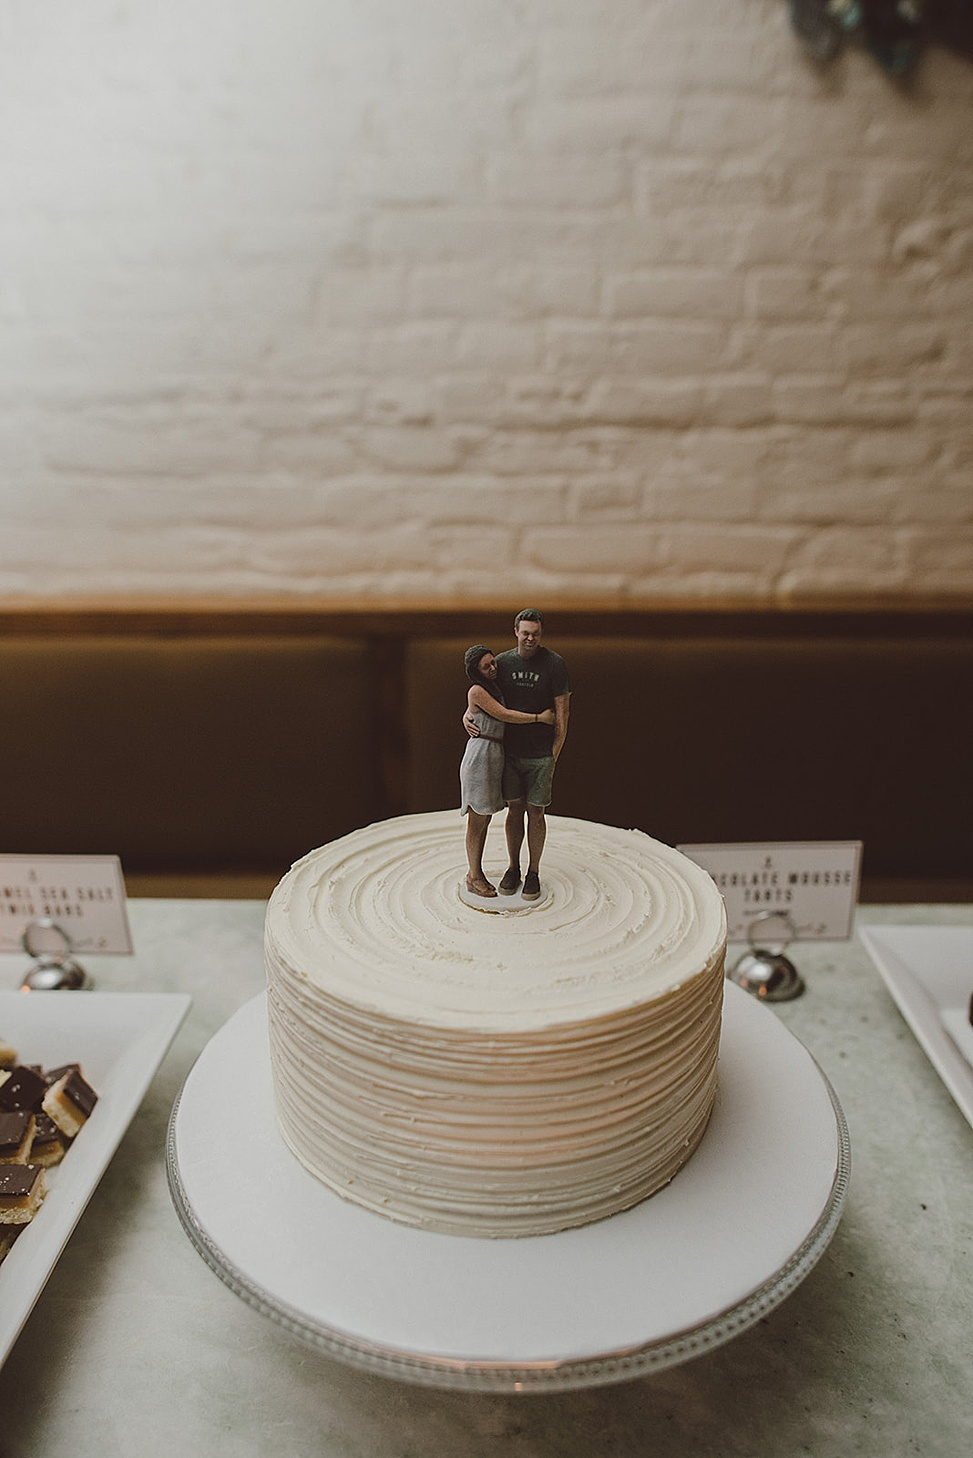 The wedding cake was casual and white, with the couple's figurines on top   so cute